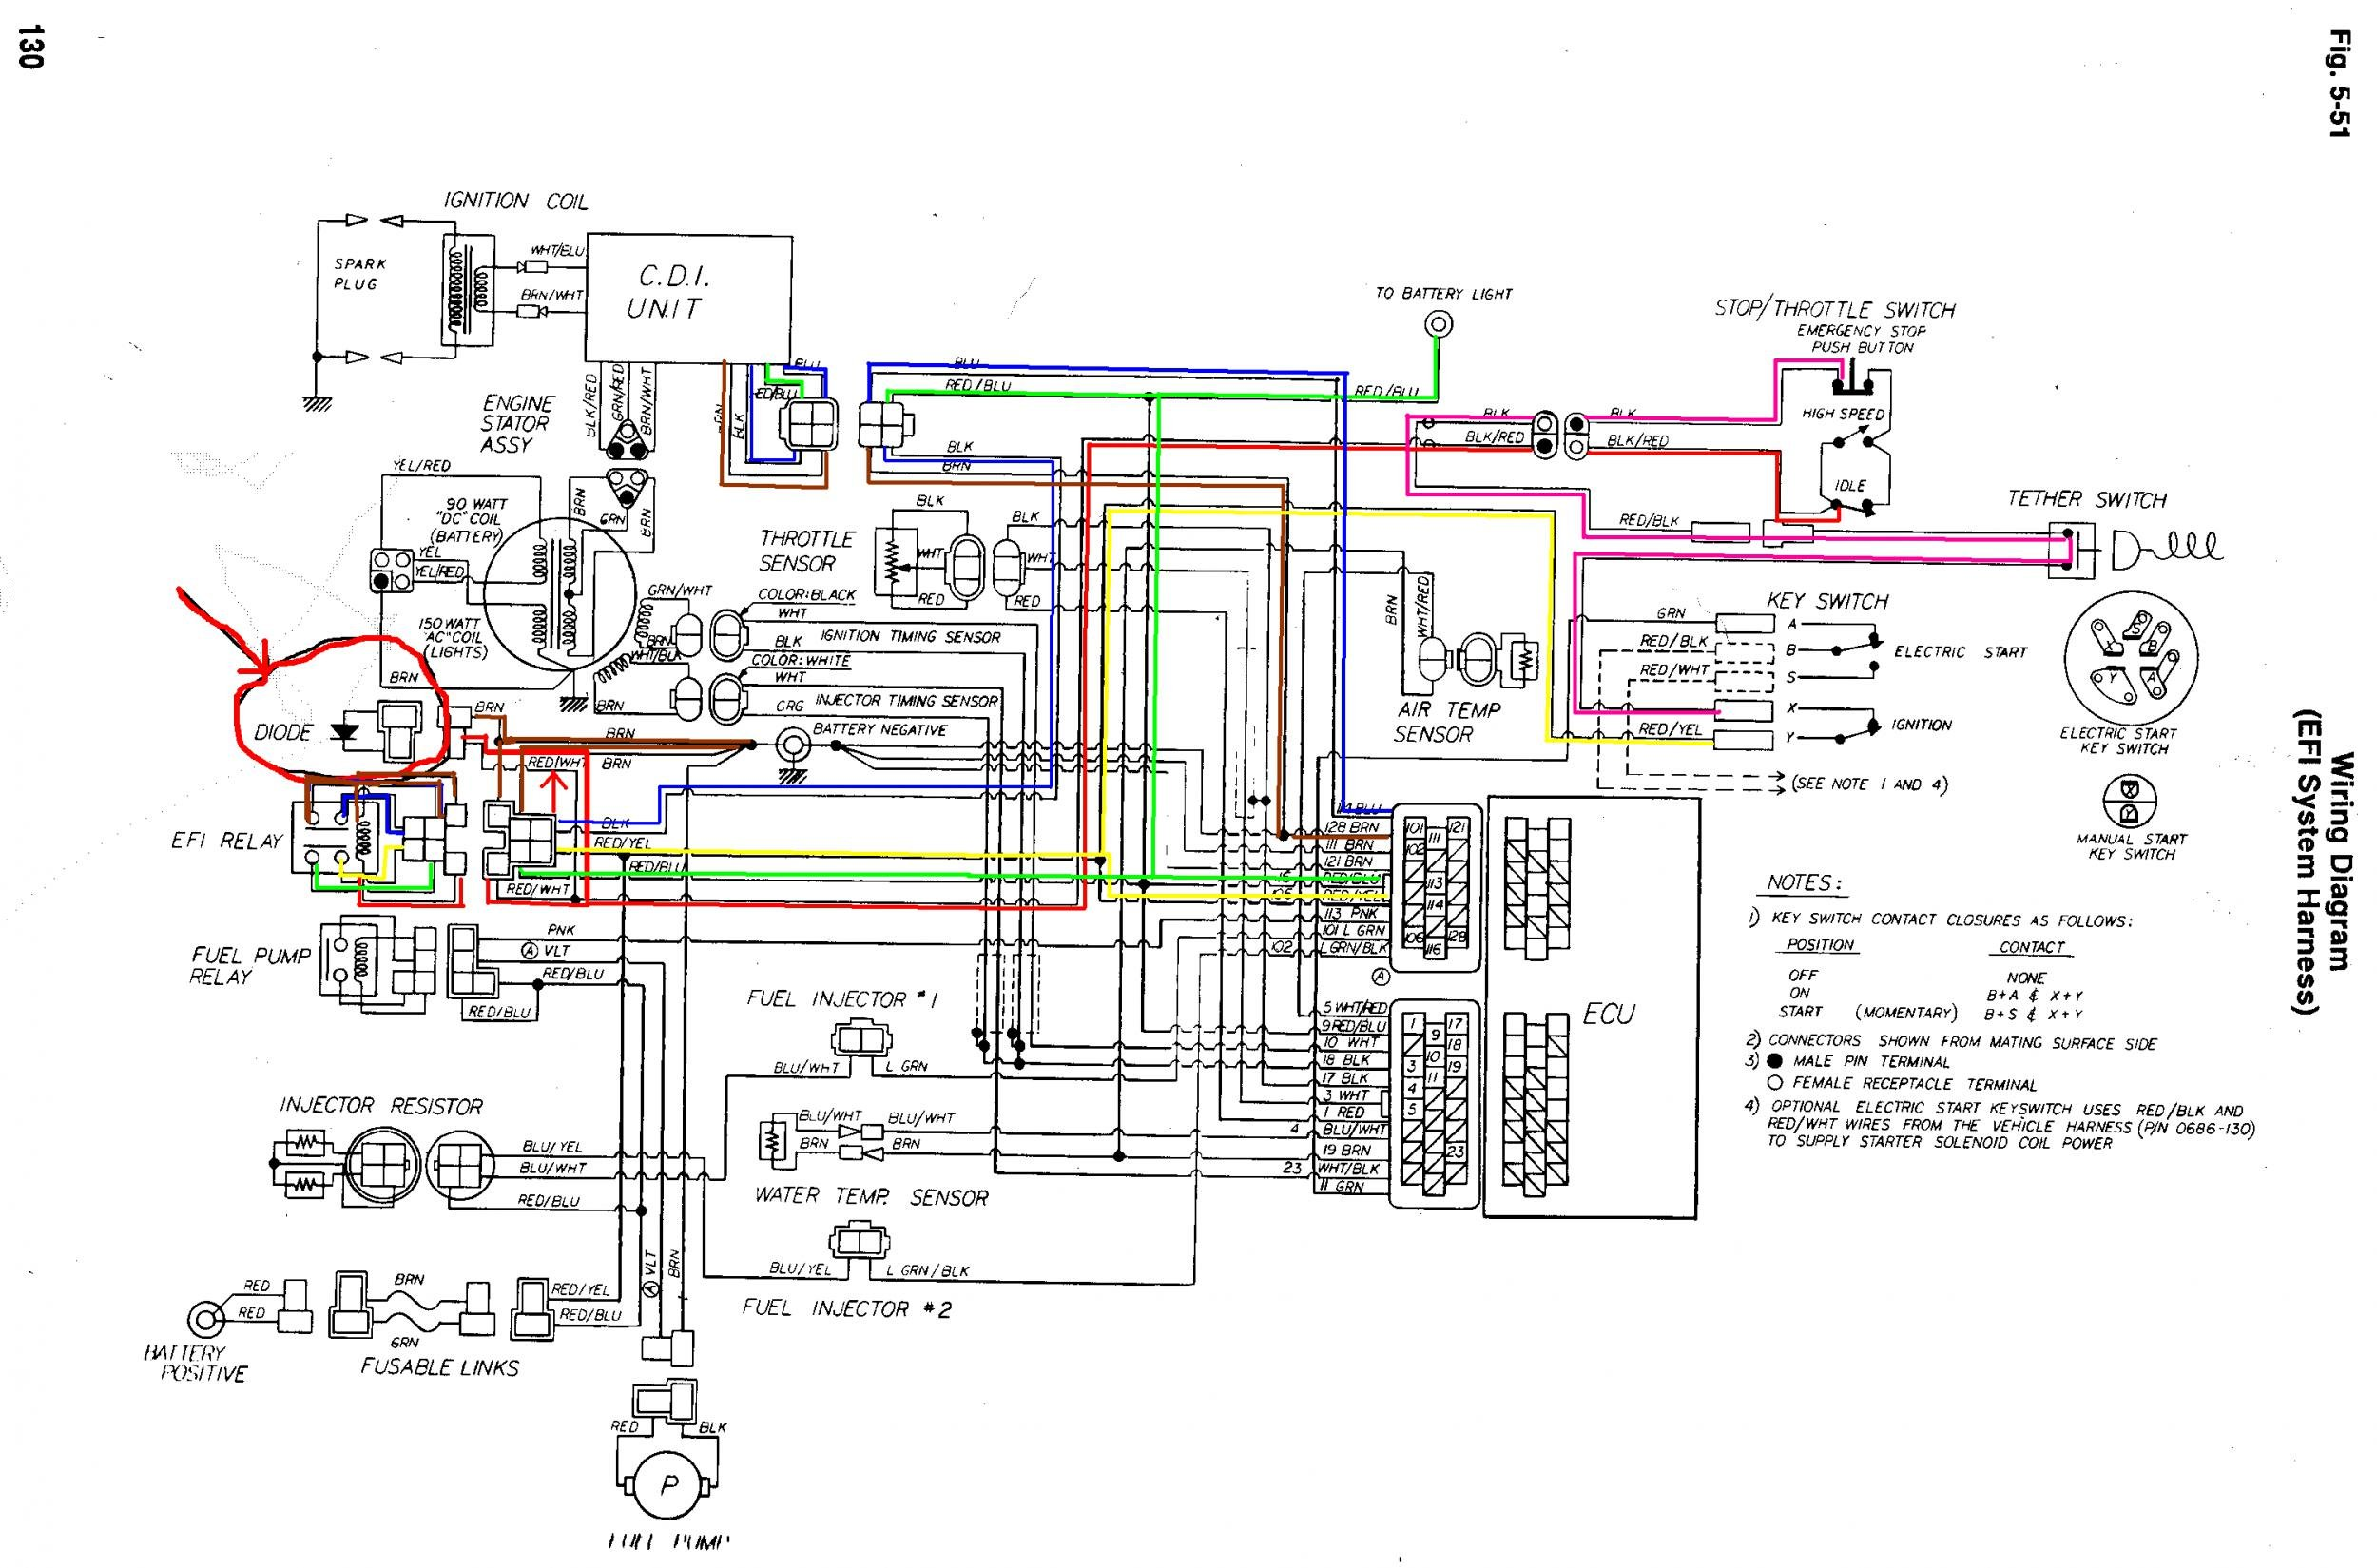 214106d1334496273 550 efi wiring 93extefiwiringcolored 550 efi wiring arcticchat com arctic cat forum Chevy Starter Wiring Diagram at creativeand.co